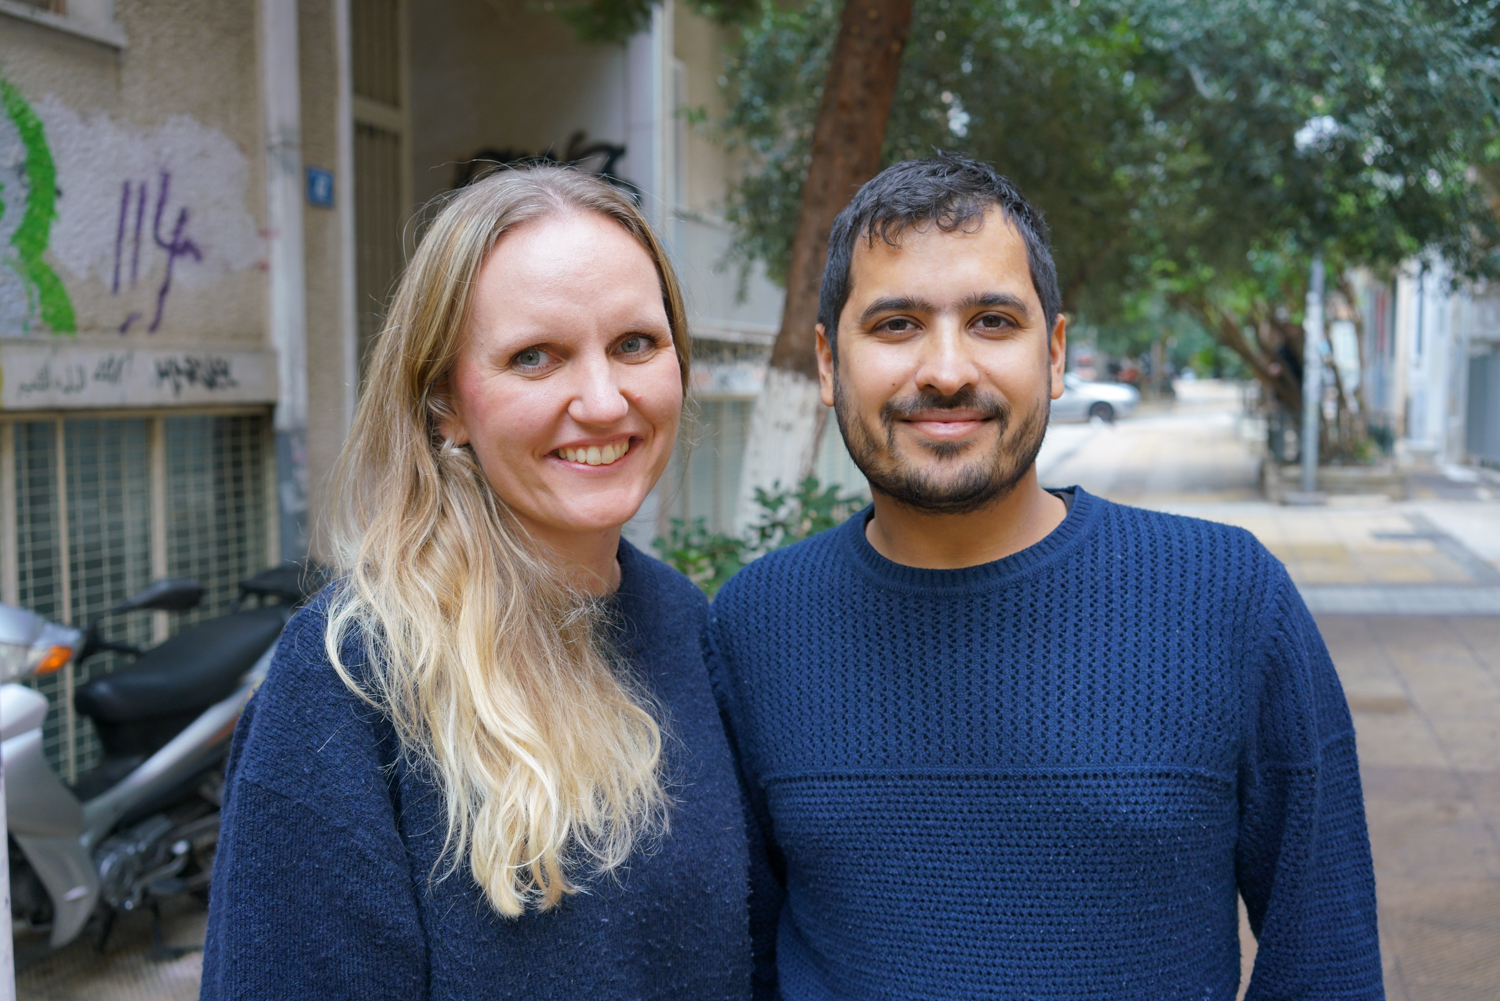 Patricia Kirk and her husband Dan Biswas founded the Faros home for unaccompanied minors and continue to develop the staff and services they offer for vulnerable teenagers in Athens. Photo: Talitha Brauer